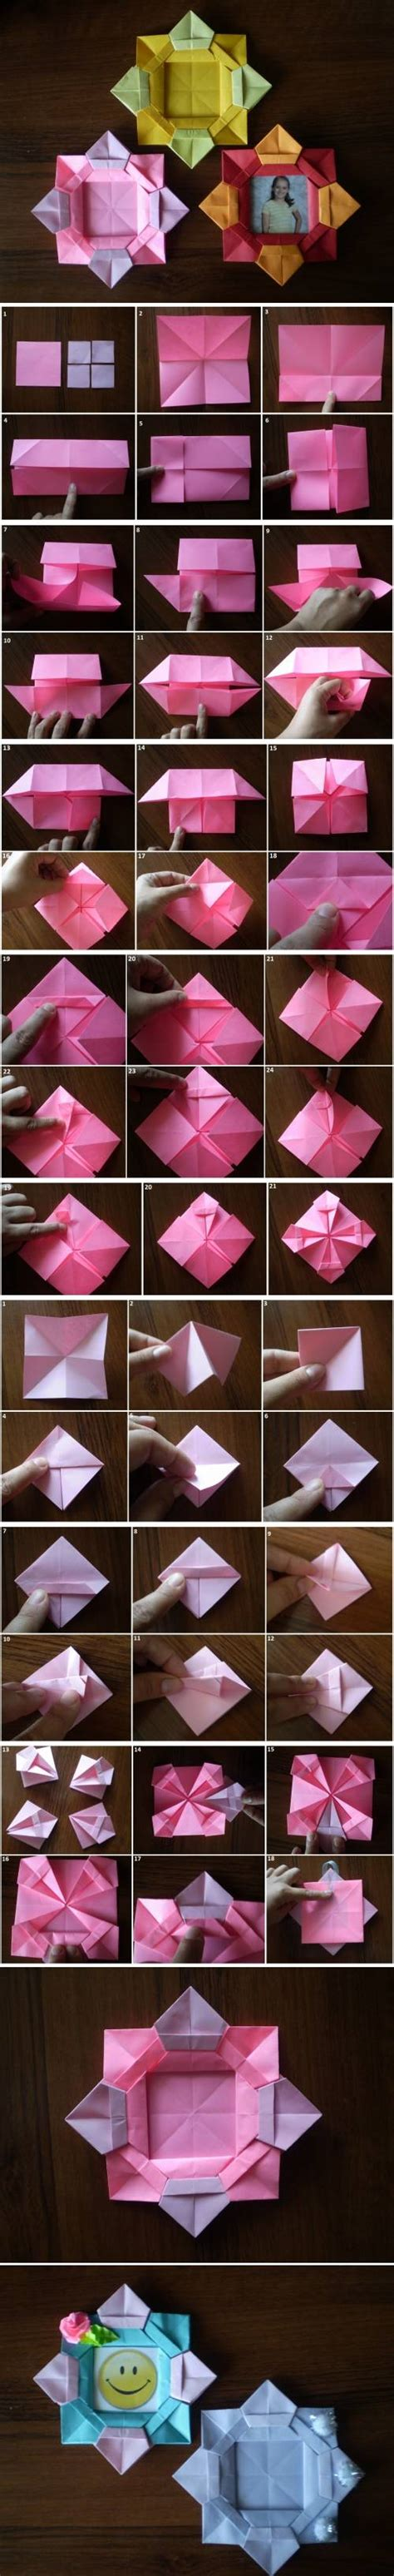 Picture Frame Origami - how to make origami flower picture frame step by step diy